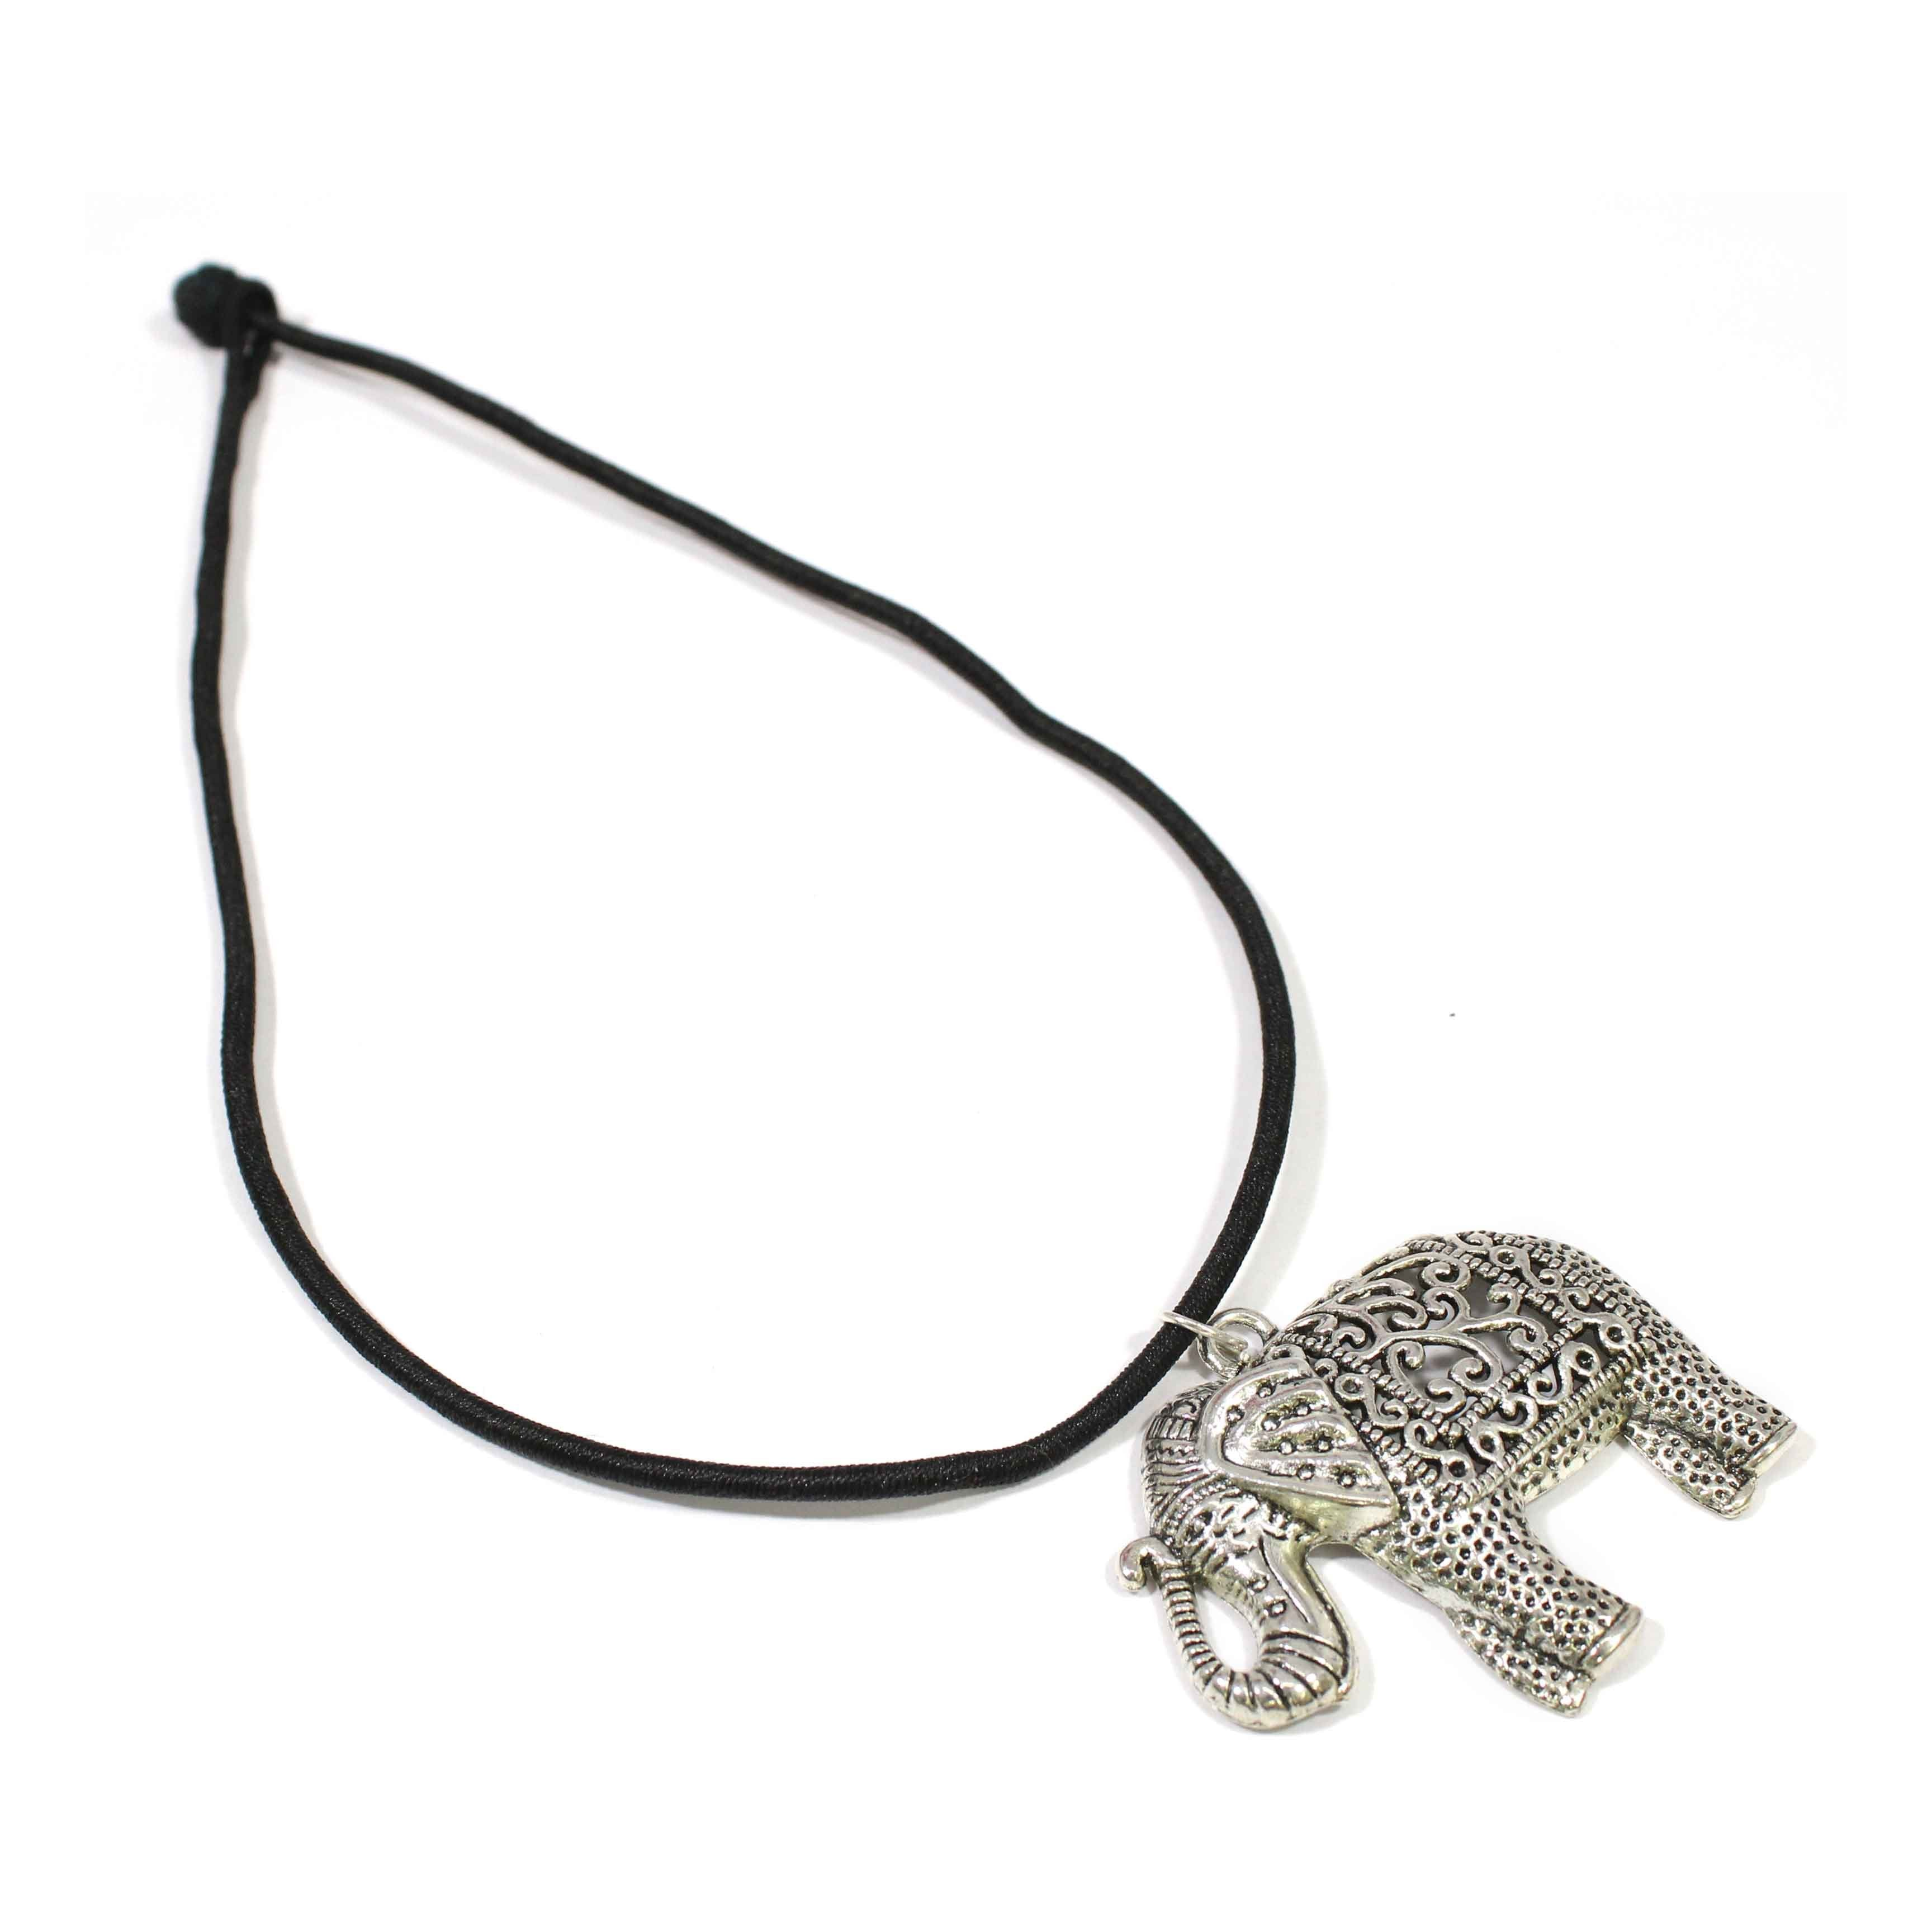 German Silver Oxidized Elephant Shape Pendant Necklace with Silk Dori